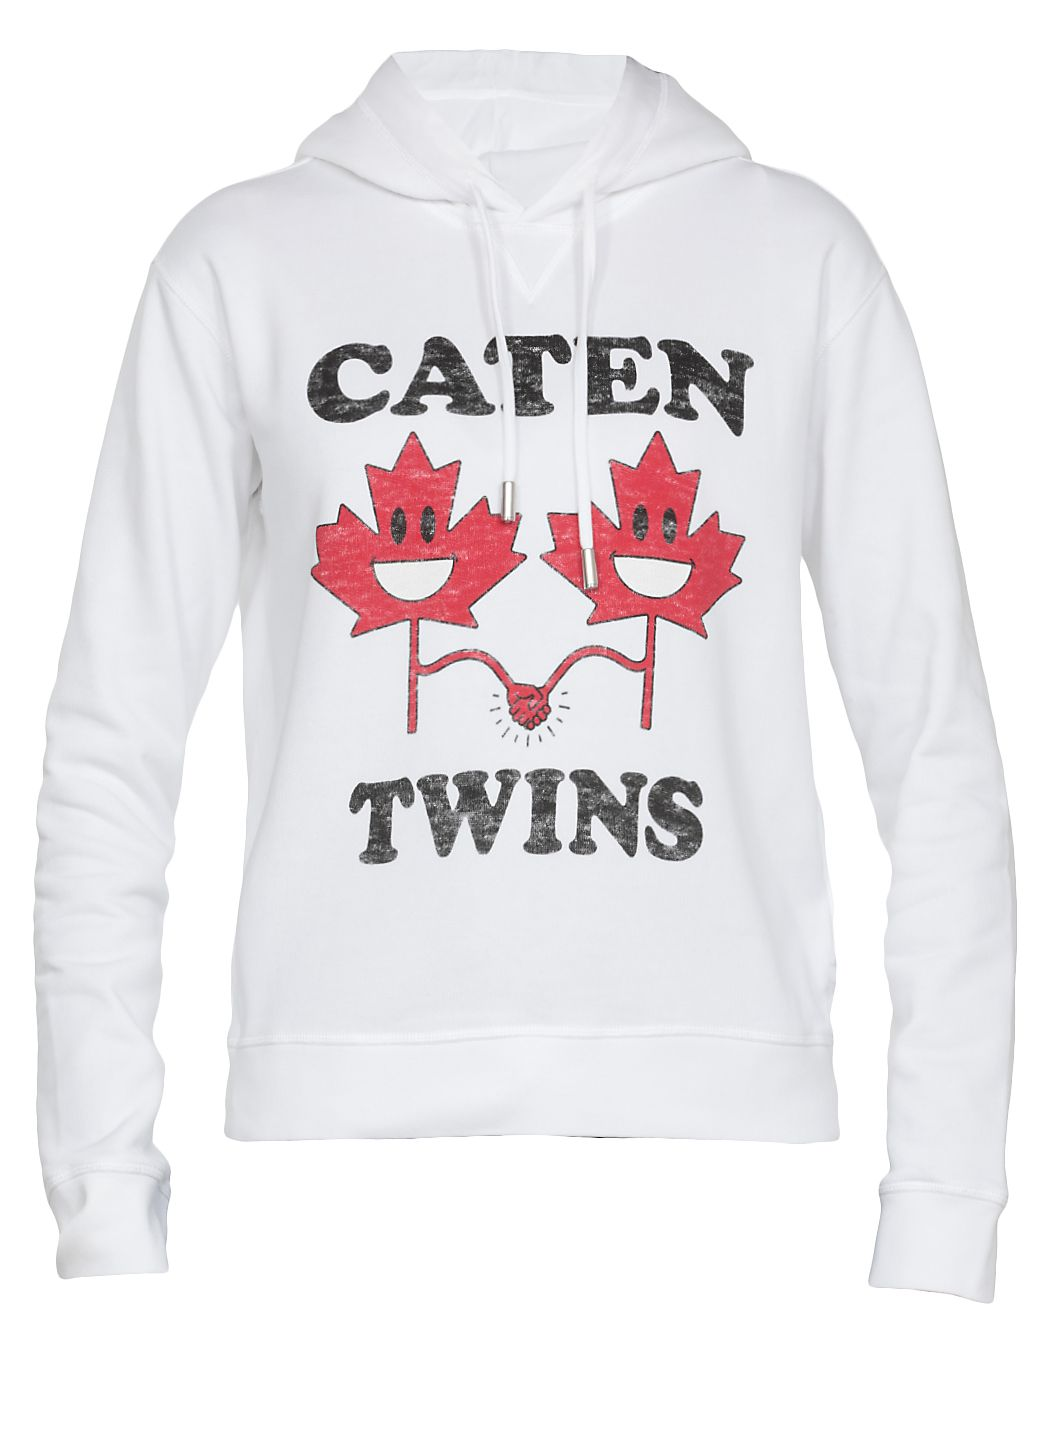 Caten Twins sweathirt